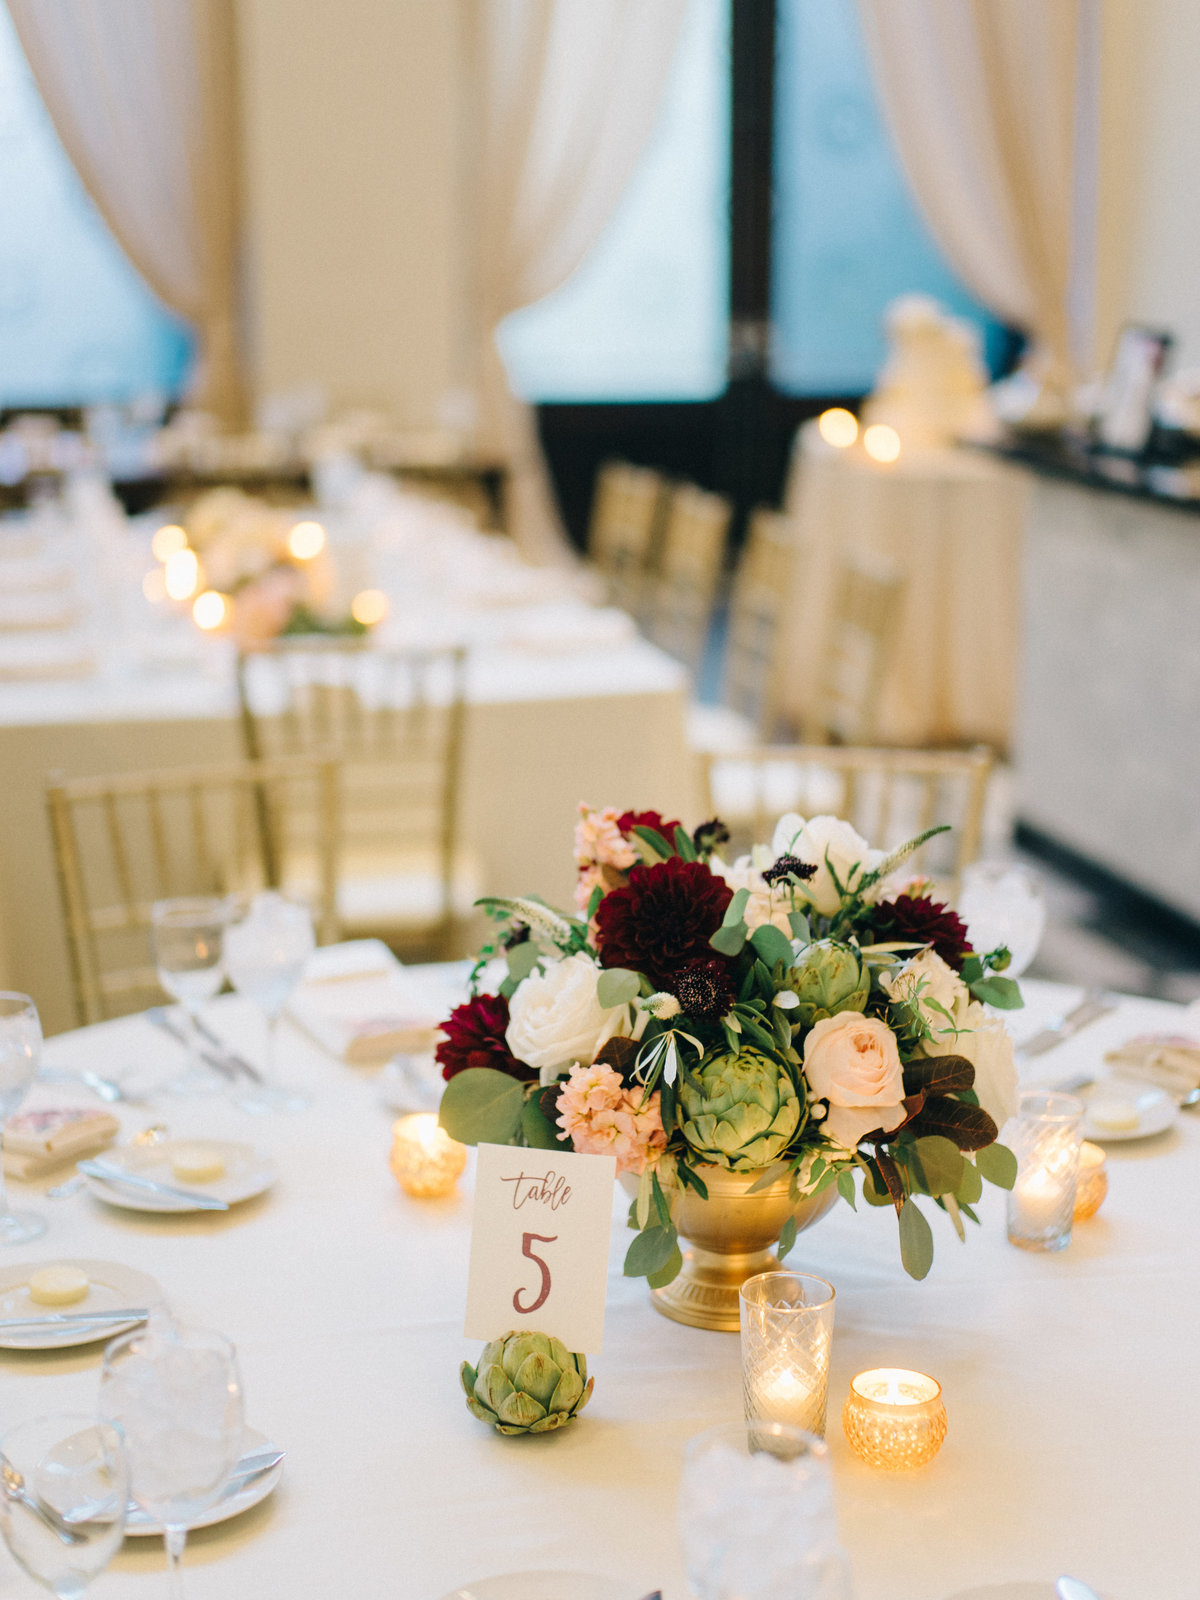 Life in Bloom Best Chicago Wedding Florist and Event Designers 19 East21